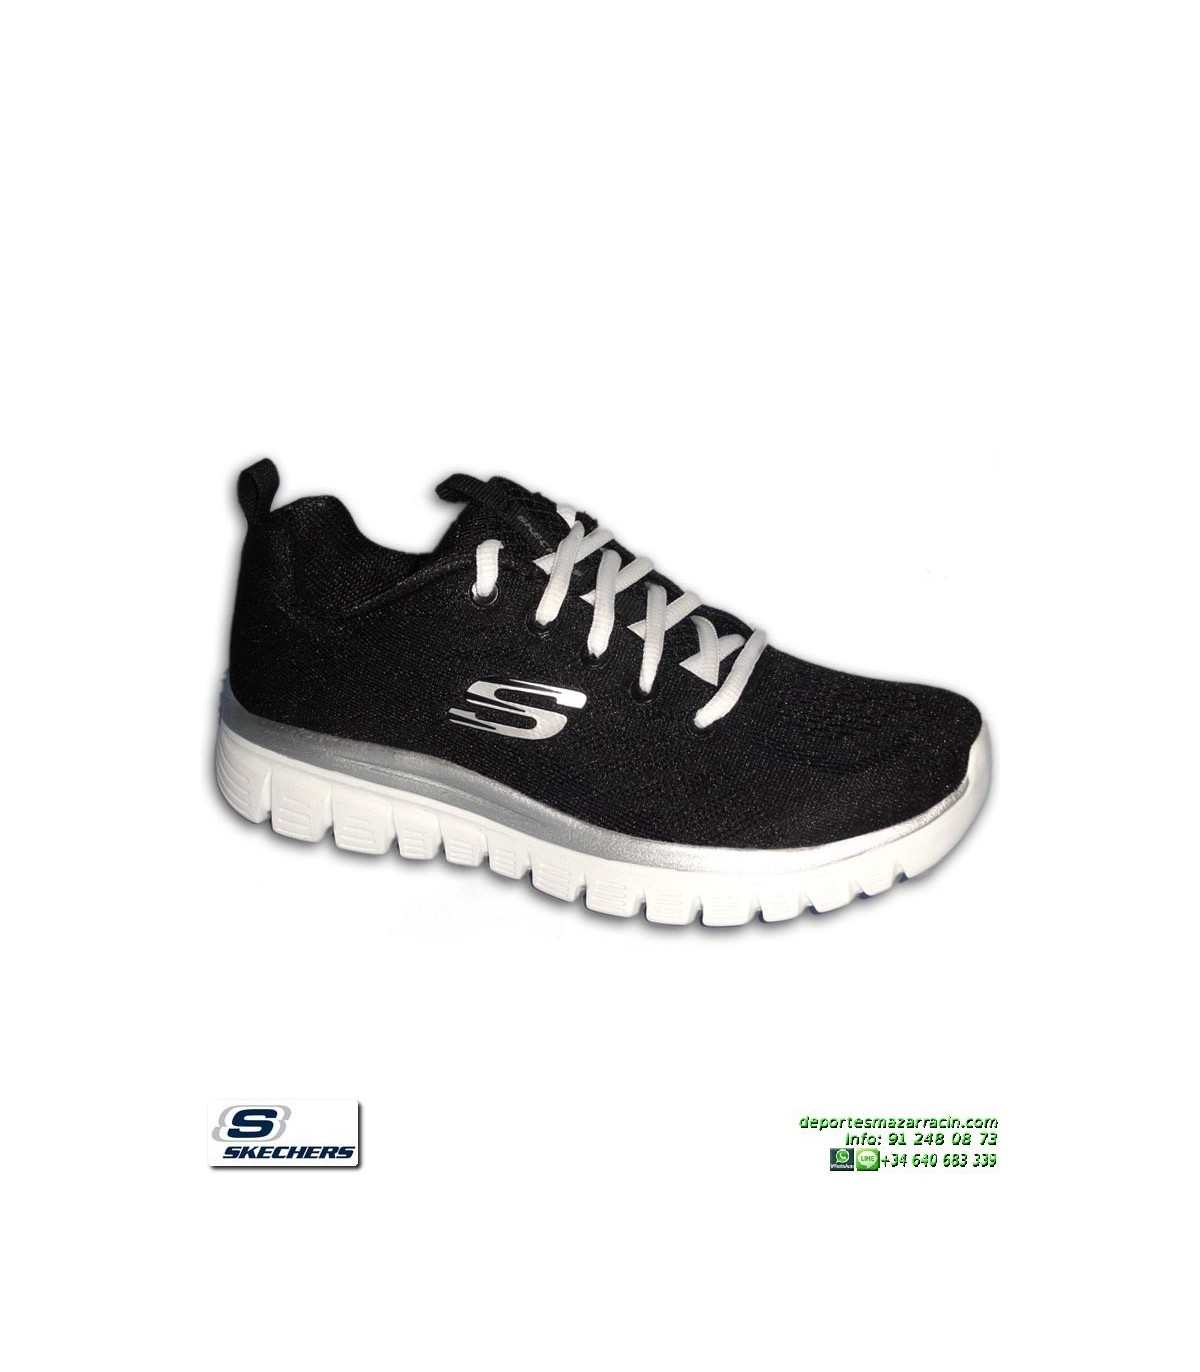 Deportiva Skechers Mujer GRACEFUL Get Connected Negro Blanco Memory Foam